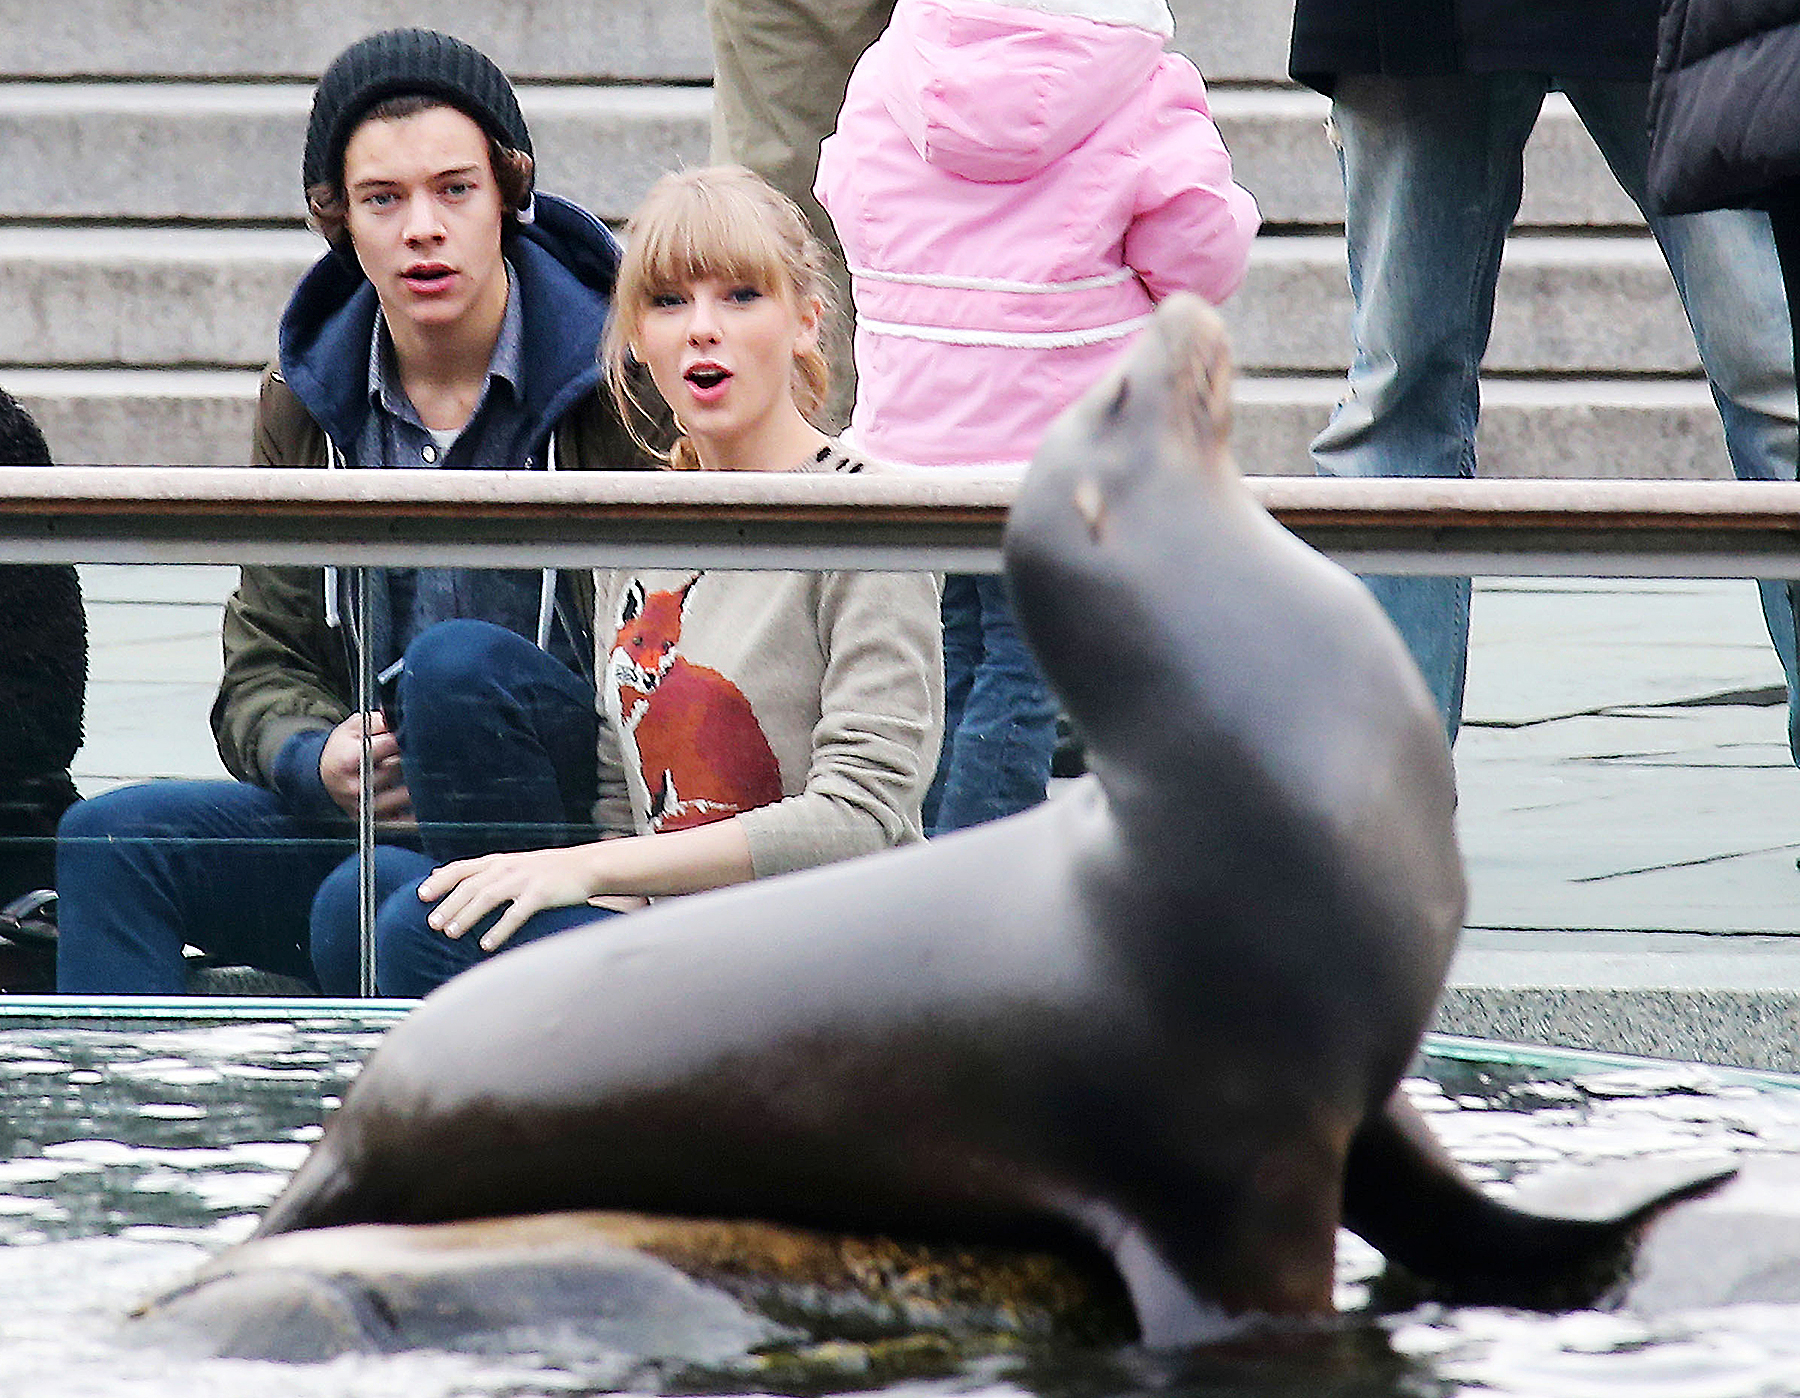 Harry Styles and Taylor Swift at the Central Park Zoo